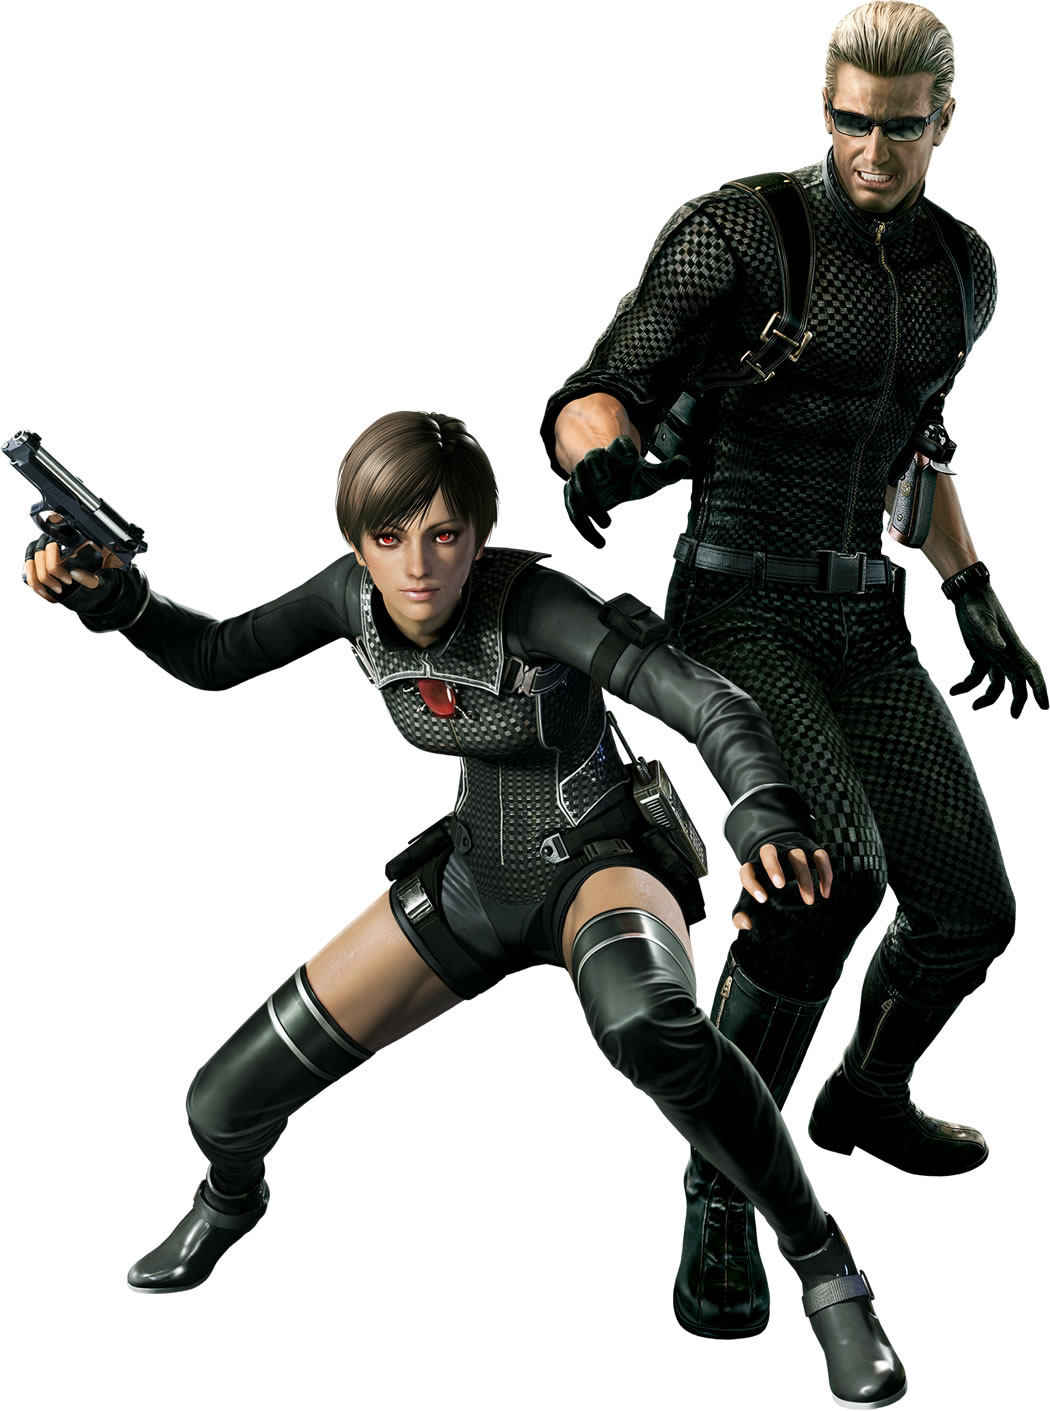 re0-wesker-mode-wesker-and-rebecca